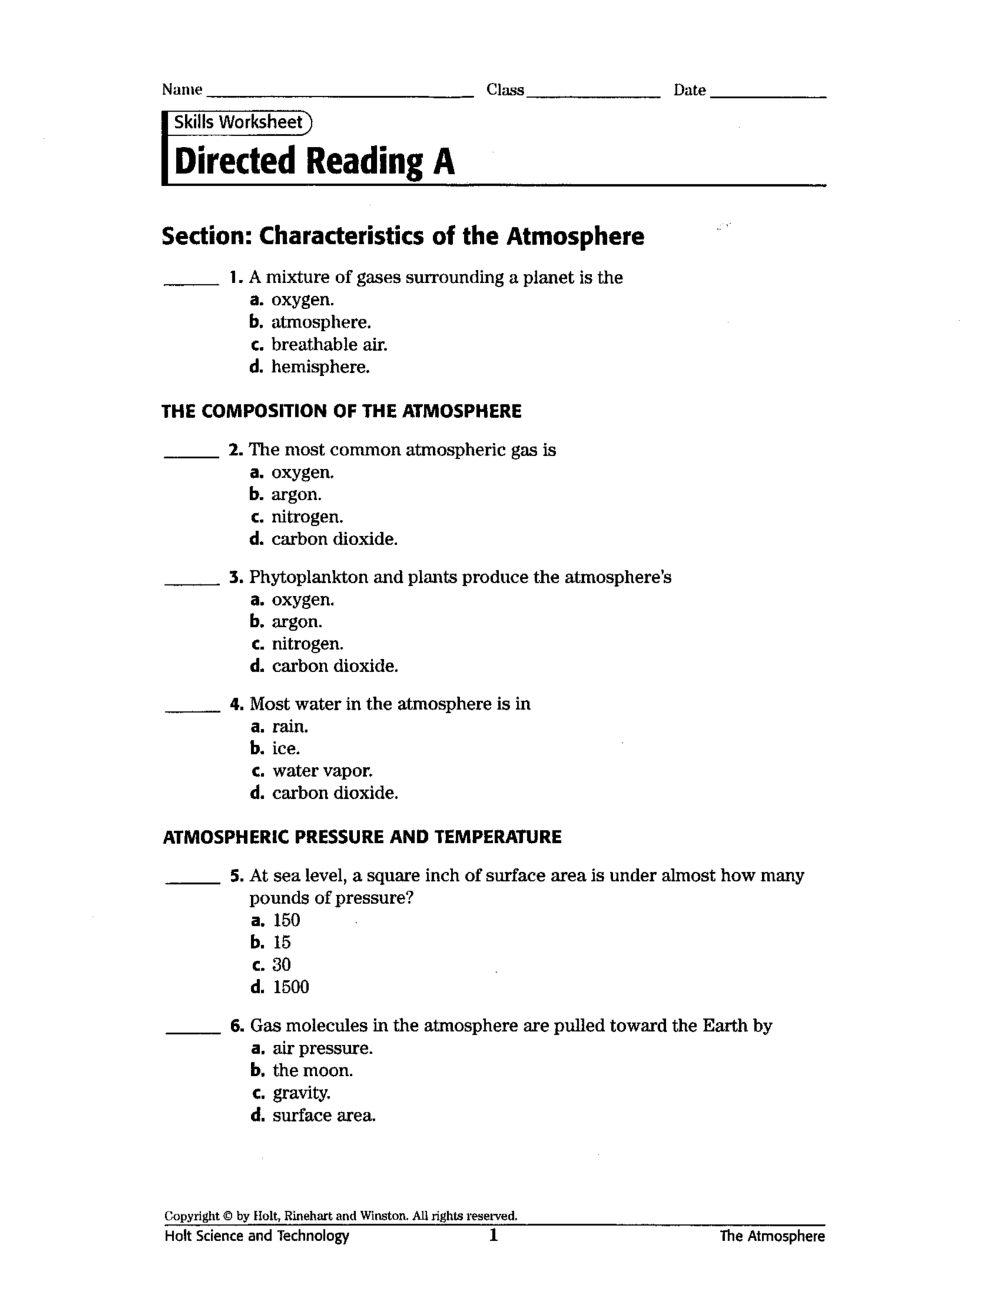 medium resolution of Occurrences Of The Atmosphere Worksheet   Printable Worksheets and  Activities for Teachers